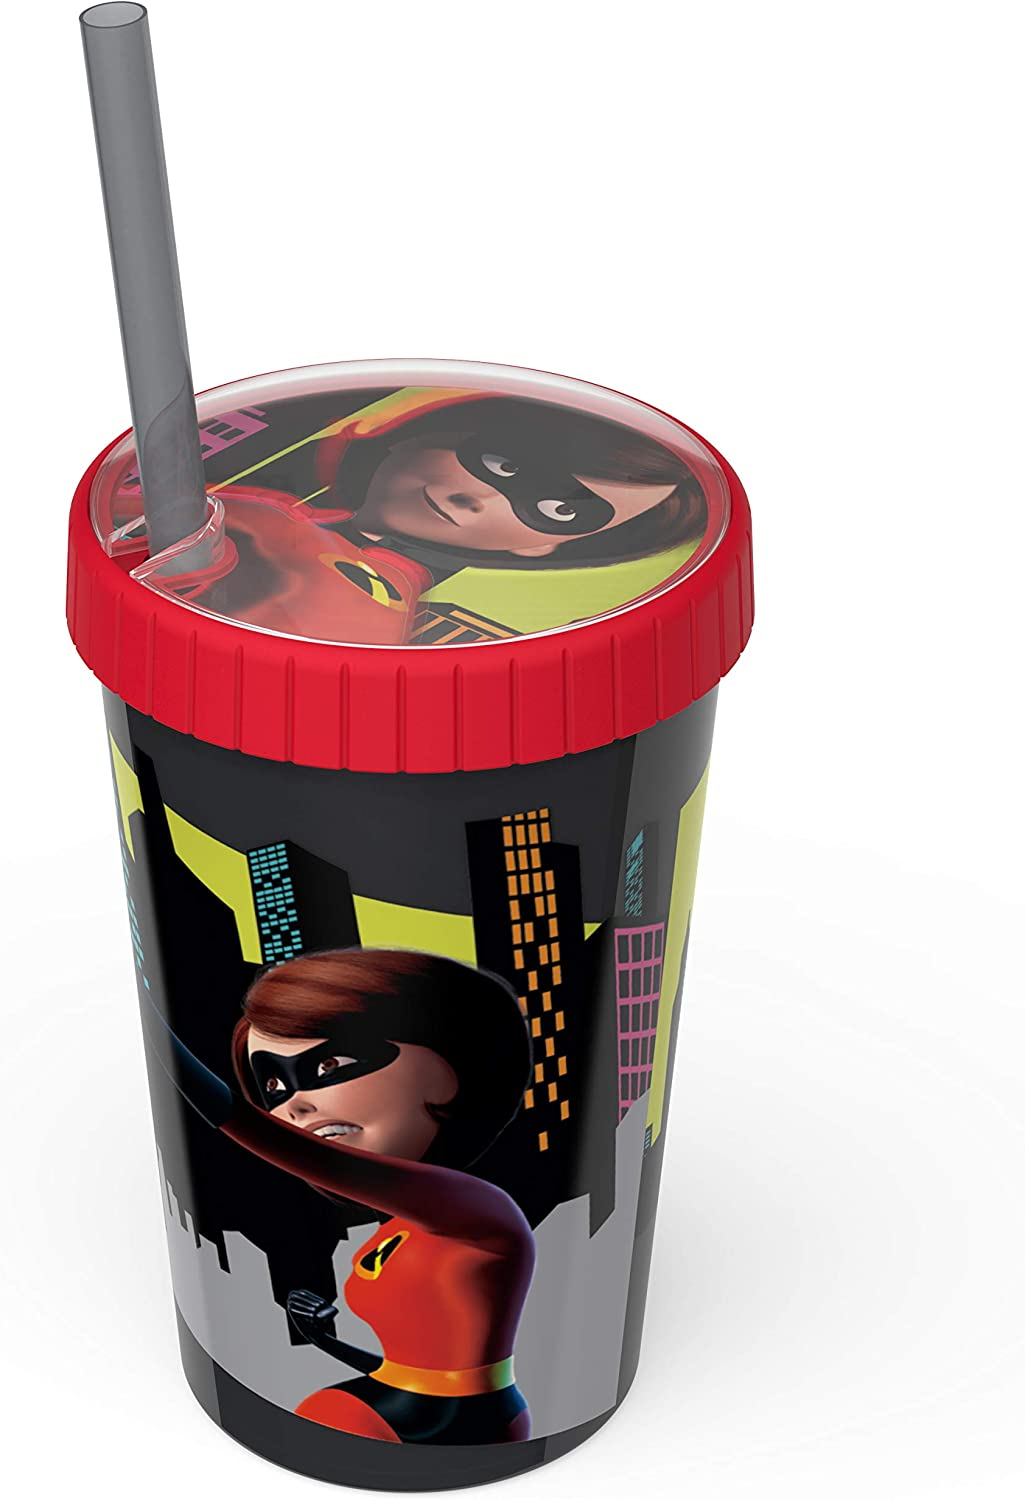 Zak Designs 16.5oz Incredibles 2 Tumbler With Embossed Lid And Durable Straw - Artwork In Domed Lid Makes Characters Pop Out; Splash-proof And Dishwasher Safe, Incredibles 2 Elastigirl E